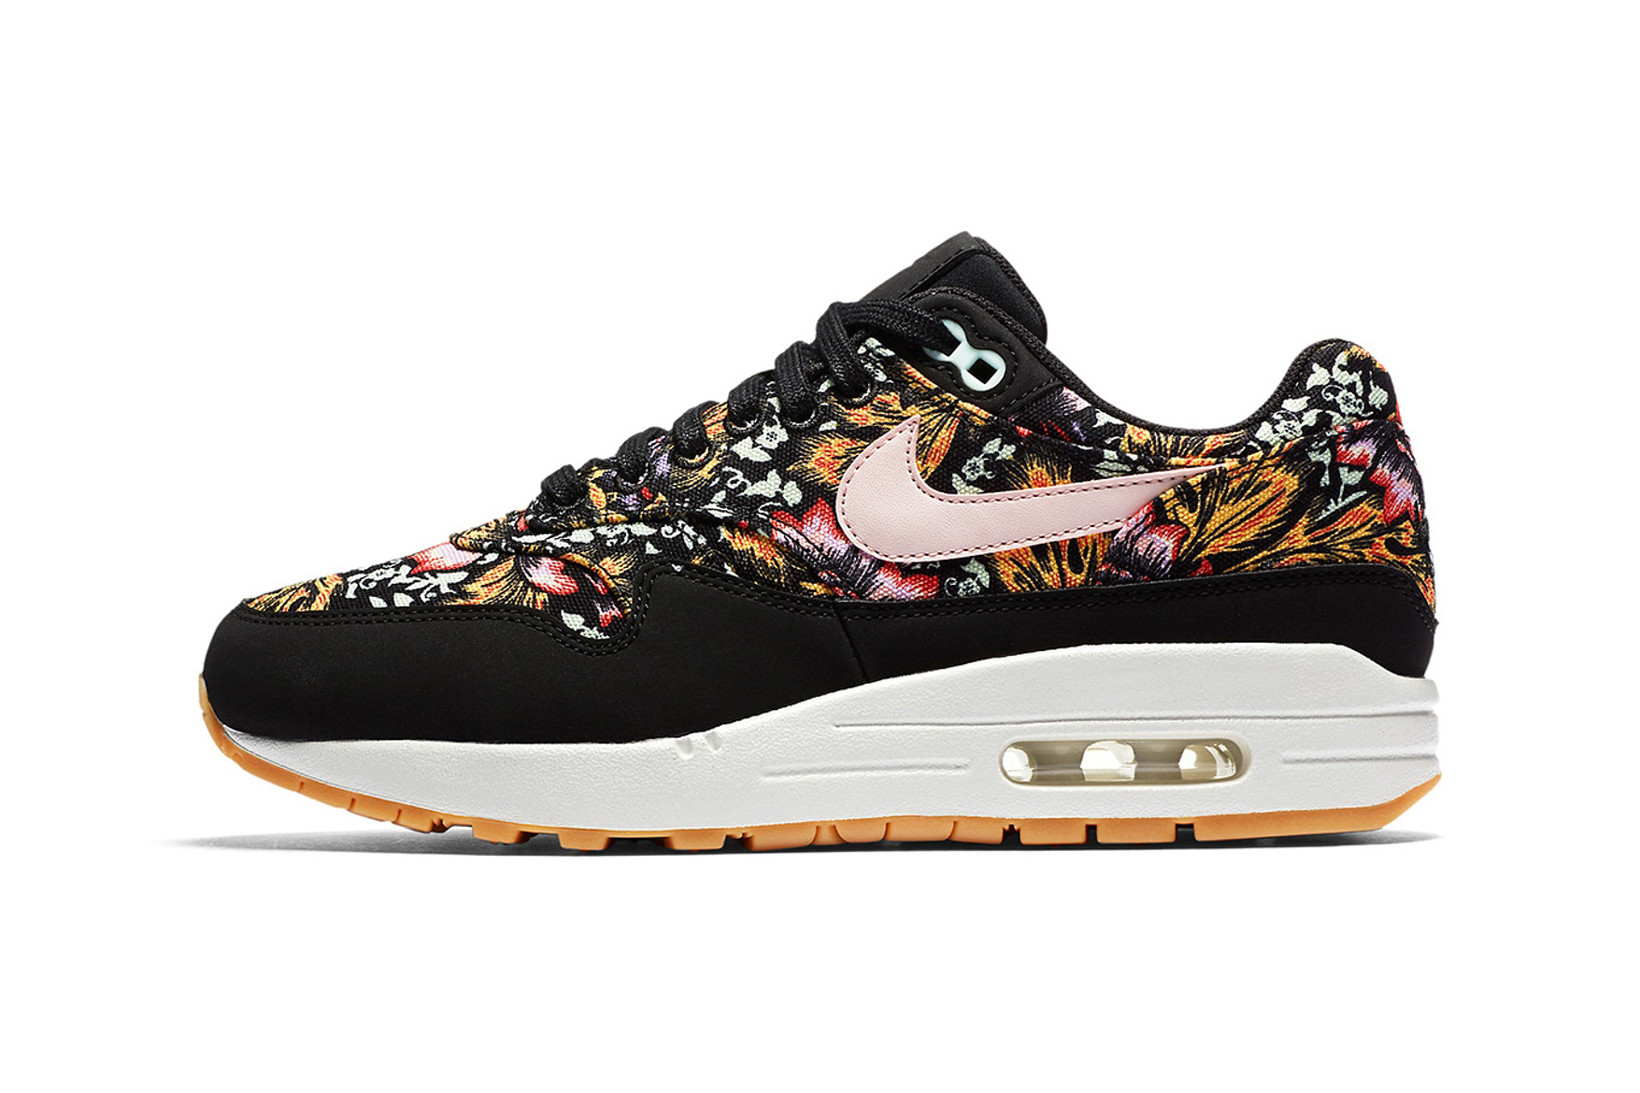 Nike Releases an Air Max 1 in Floral